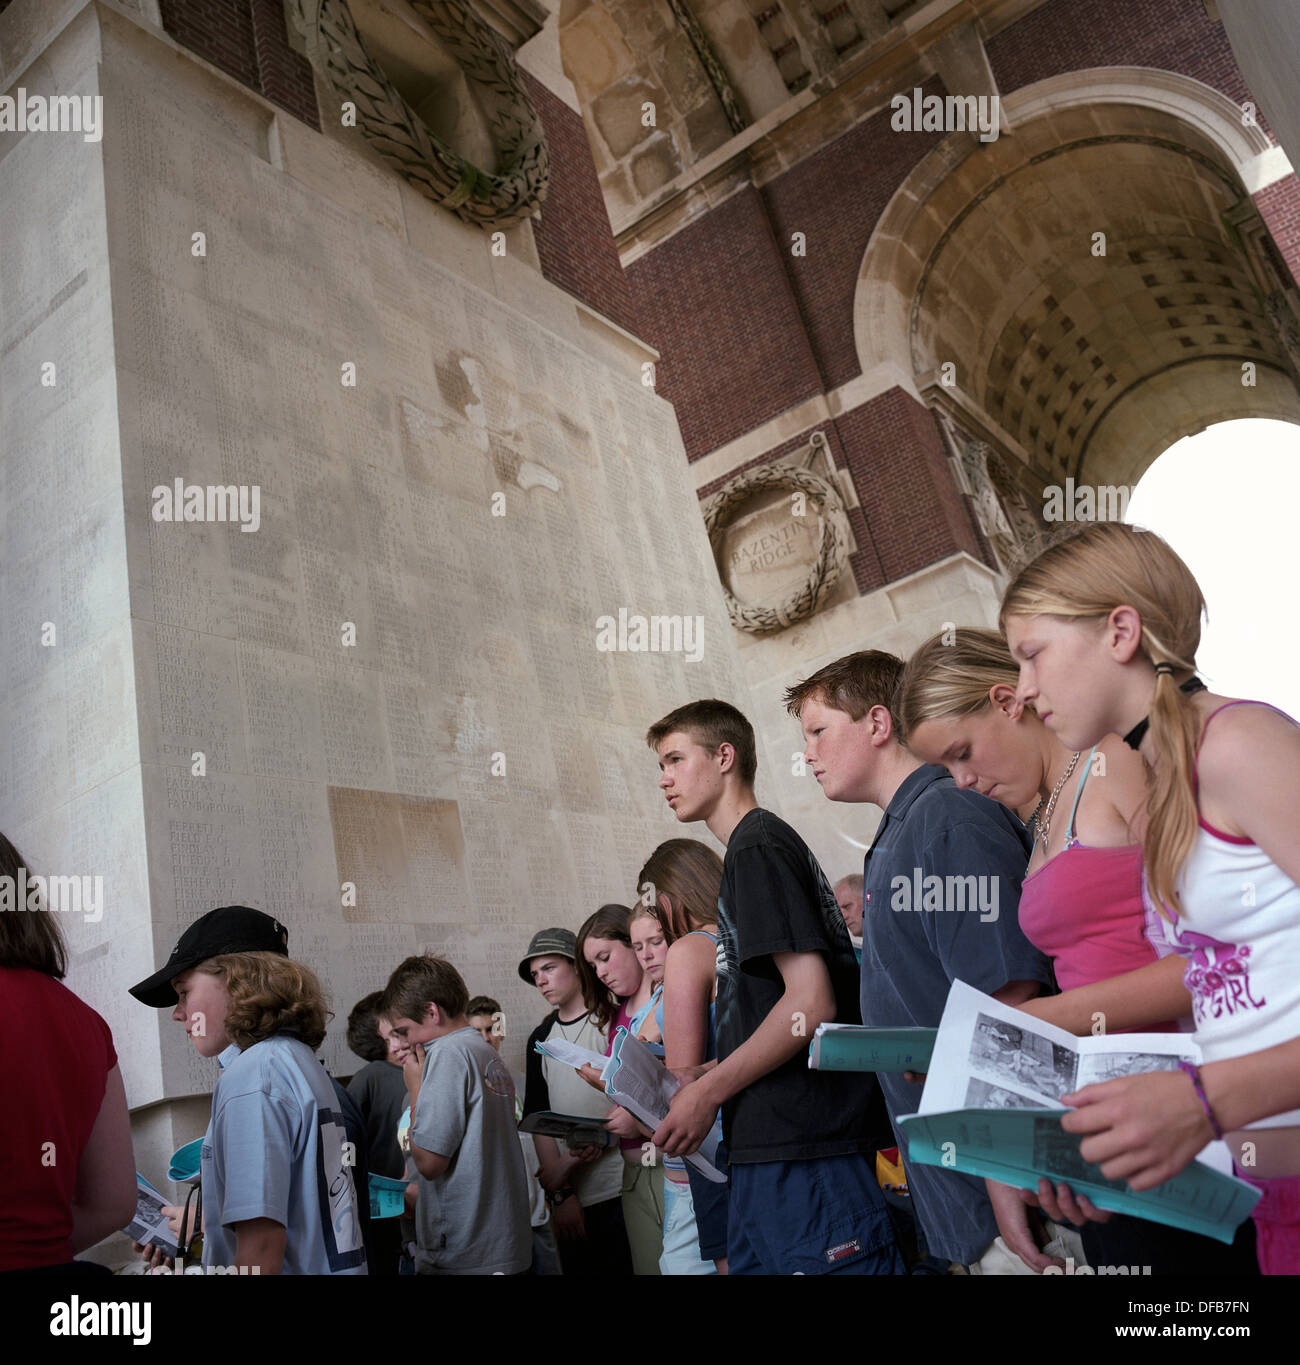 Pupils from Woolmer Hill School, Haslemere, Surrey, at the WW1 Thiepval Memorial, the largest British war memorial in the world – there were more than 57,000 British casualties in a single day during the battle of the Somme. The Thiepval Memorial to the Missing of the Somme is a major war memorial to 72,191 missing British and South African men who died in the Battles of the Somme of the First World War between 1915 and 1918 with no known grave. Designed by Sir Edwin Lutyens, the memorial was built between 1928 and 1932 and is the largest British battle memorial in the world. - Stock Image